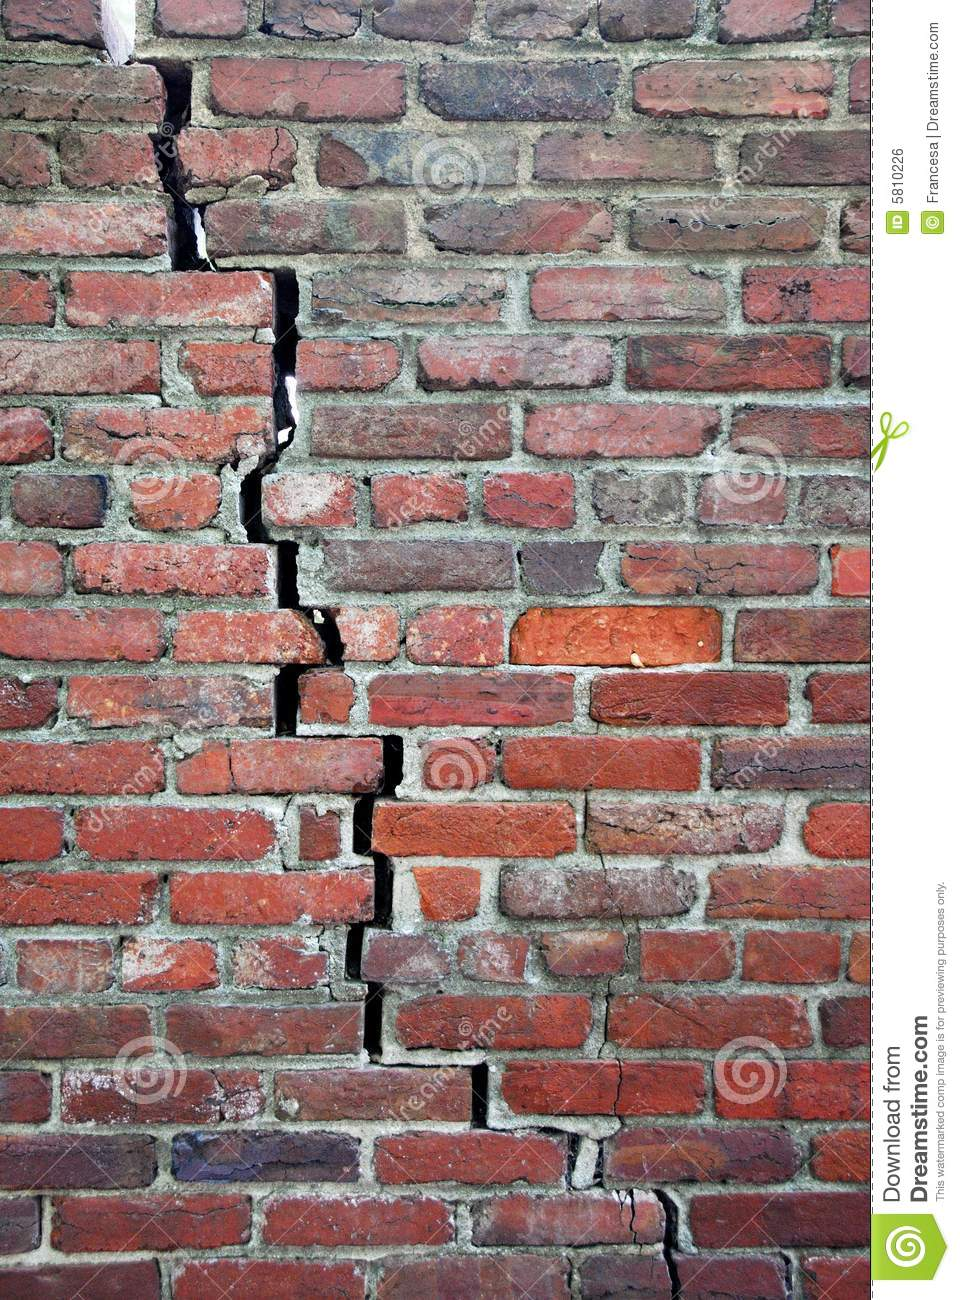 cracked brick wall royalty free stock image image 5810226 brick house clipart black and white Straw House Clip Art